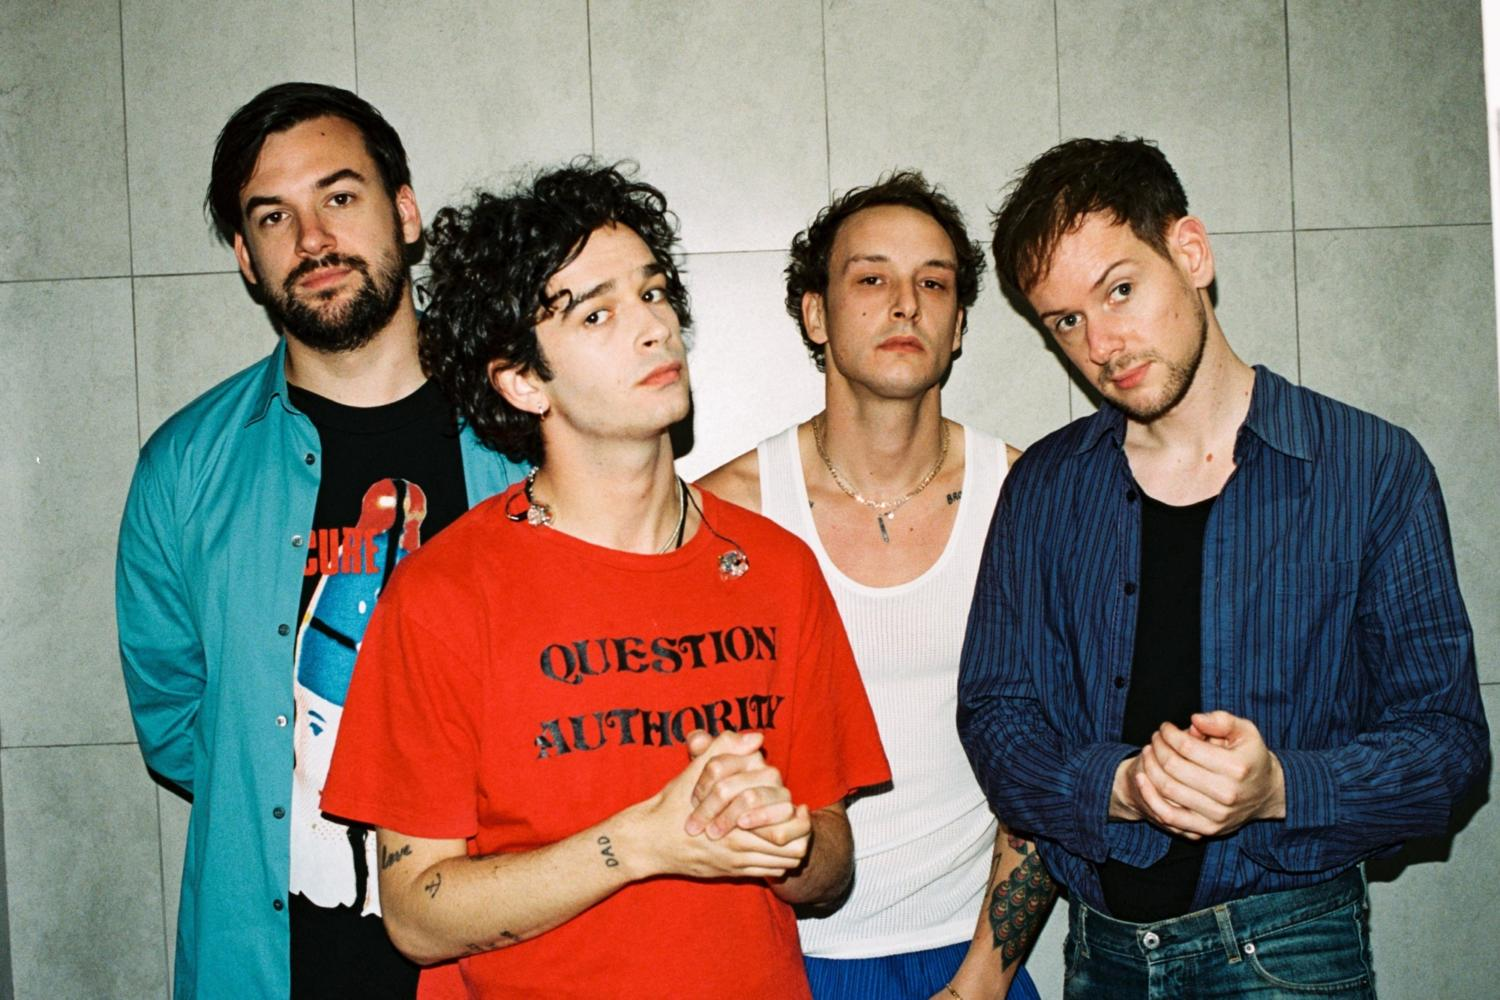 The 1975's Matty Healy hints at upcoming collab with Charli XCX